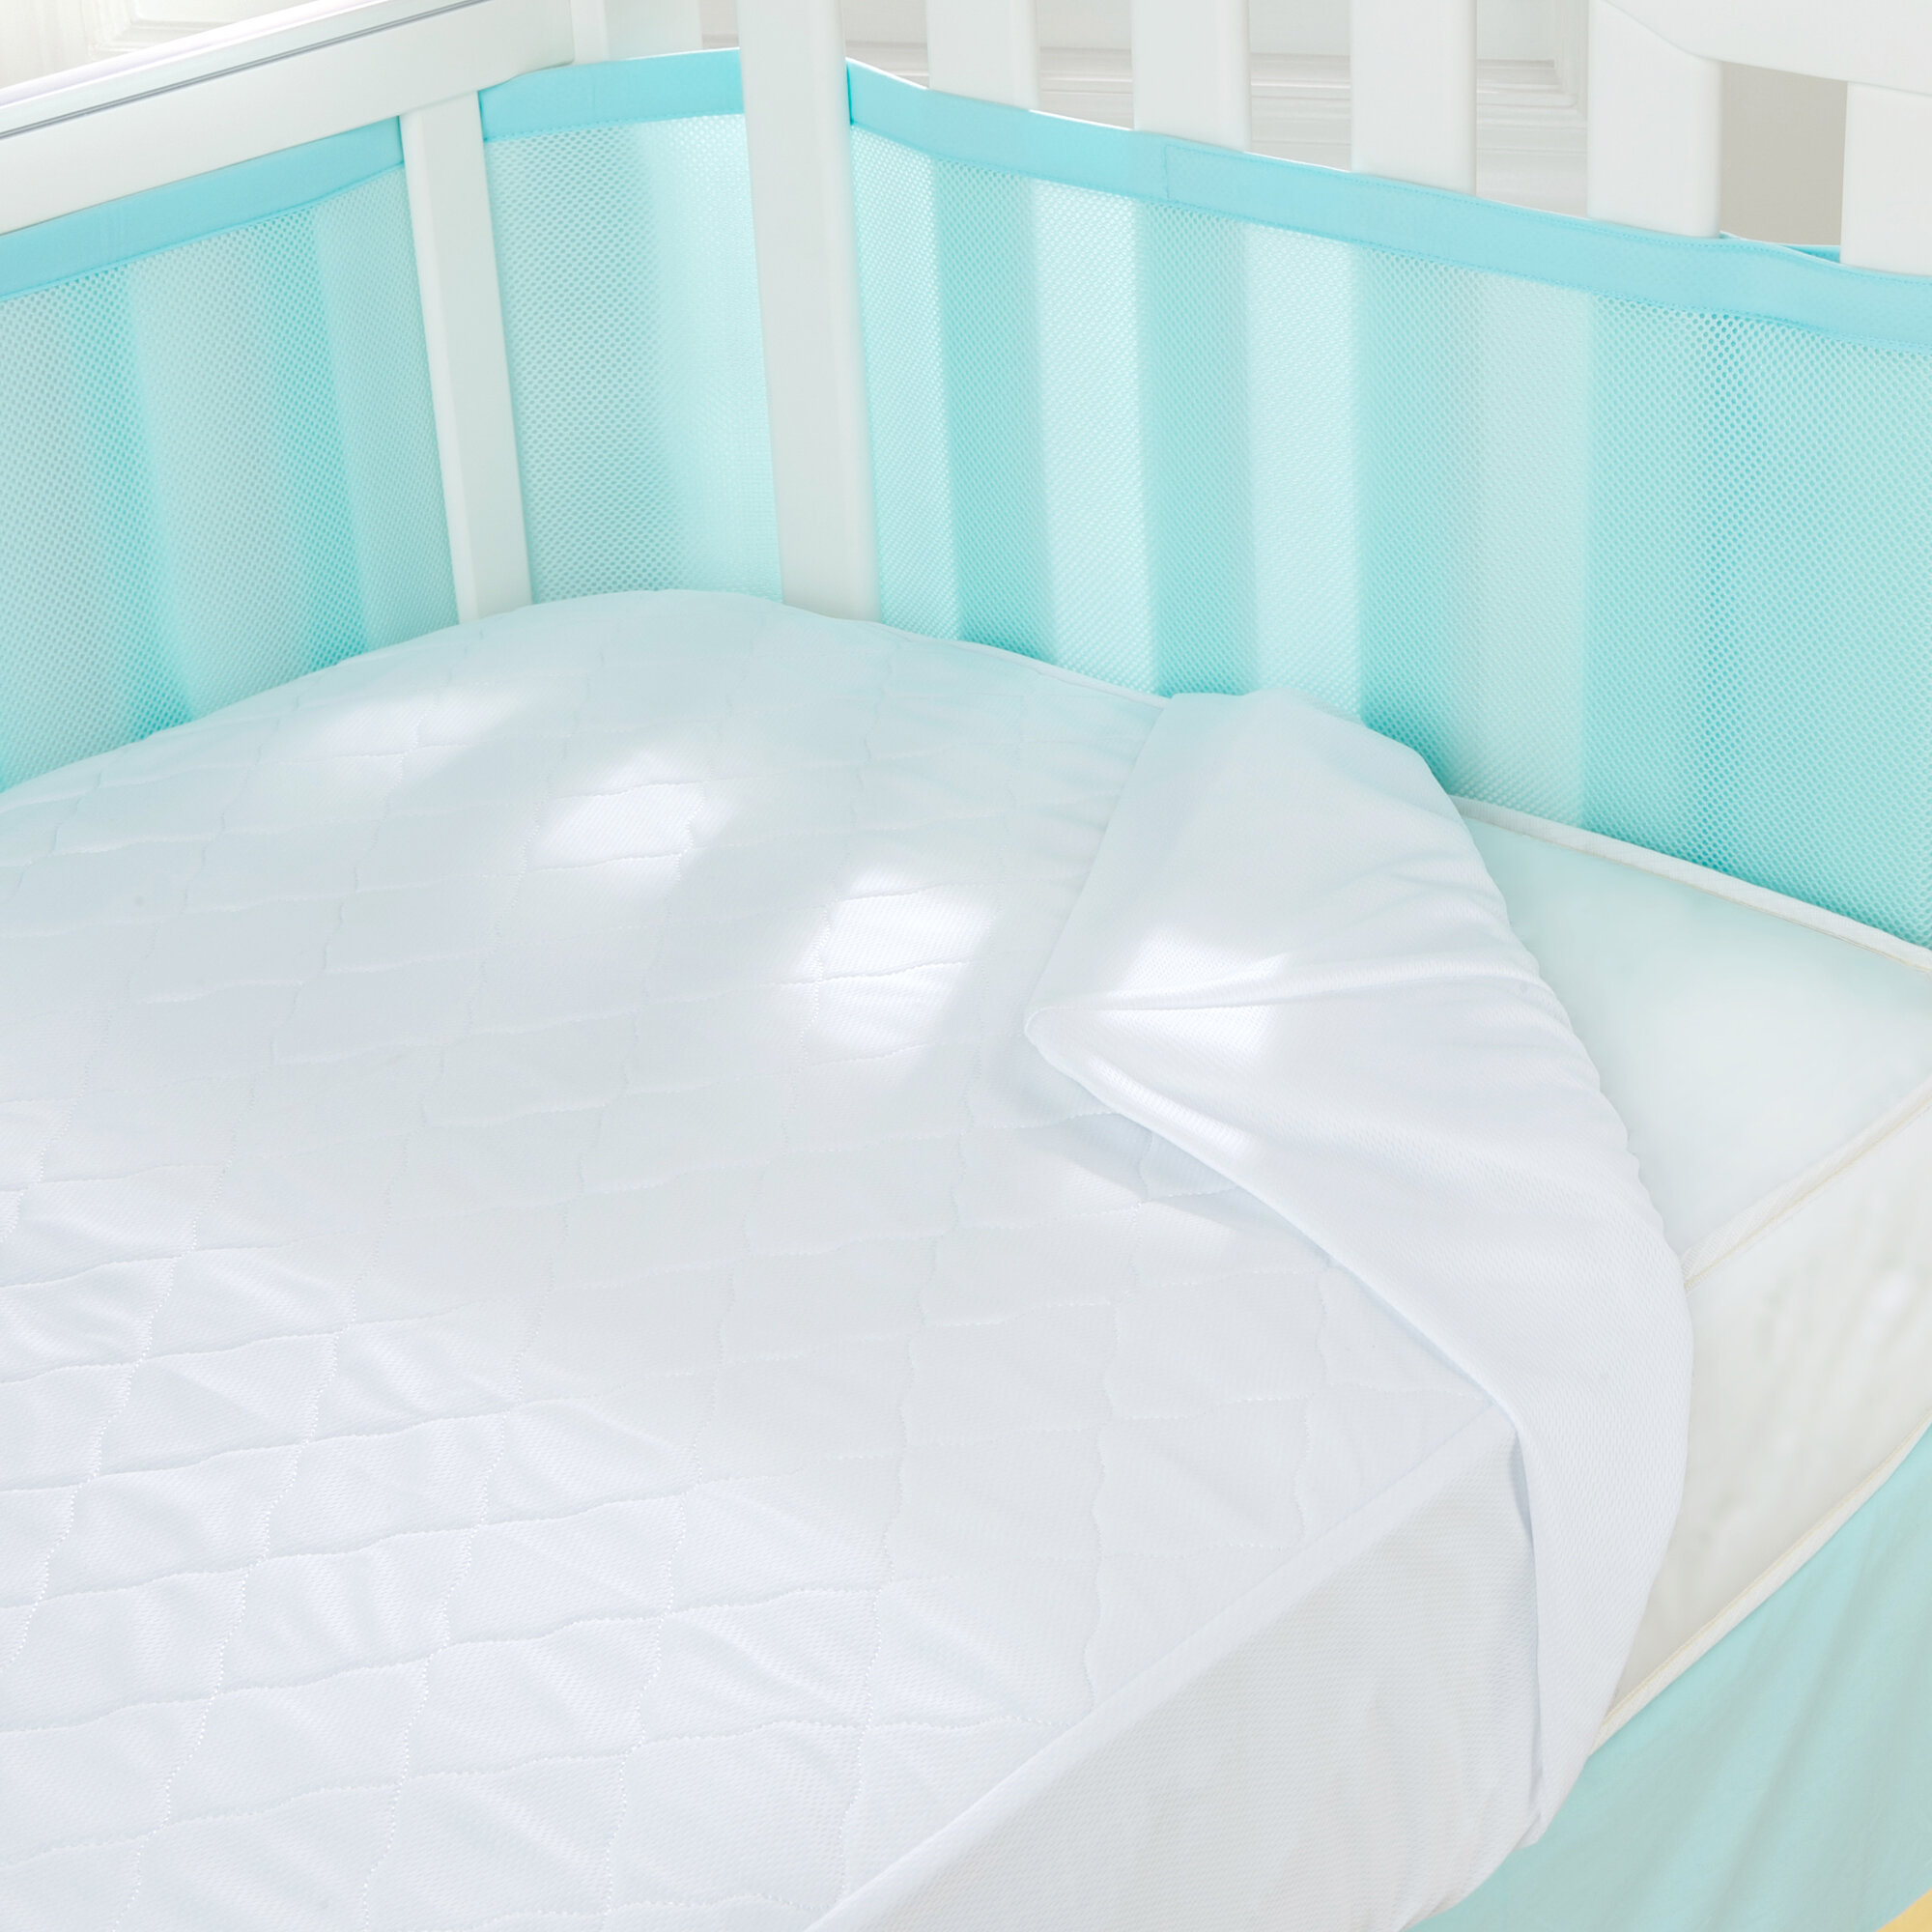 crib of for ideas toddlers breathable and mattress fresh best mattresses luxury infants safe with sleep